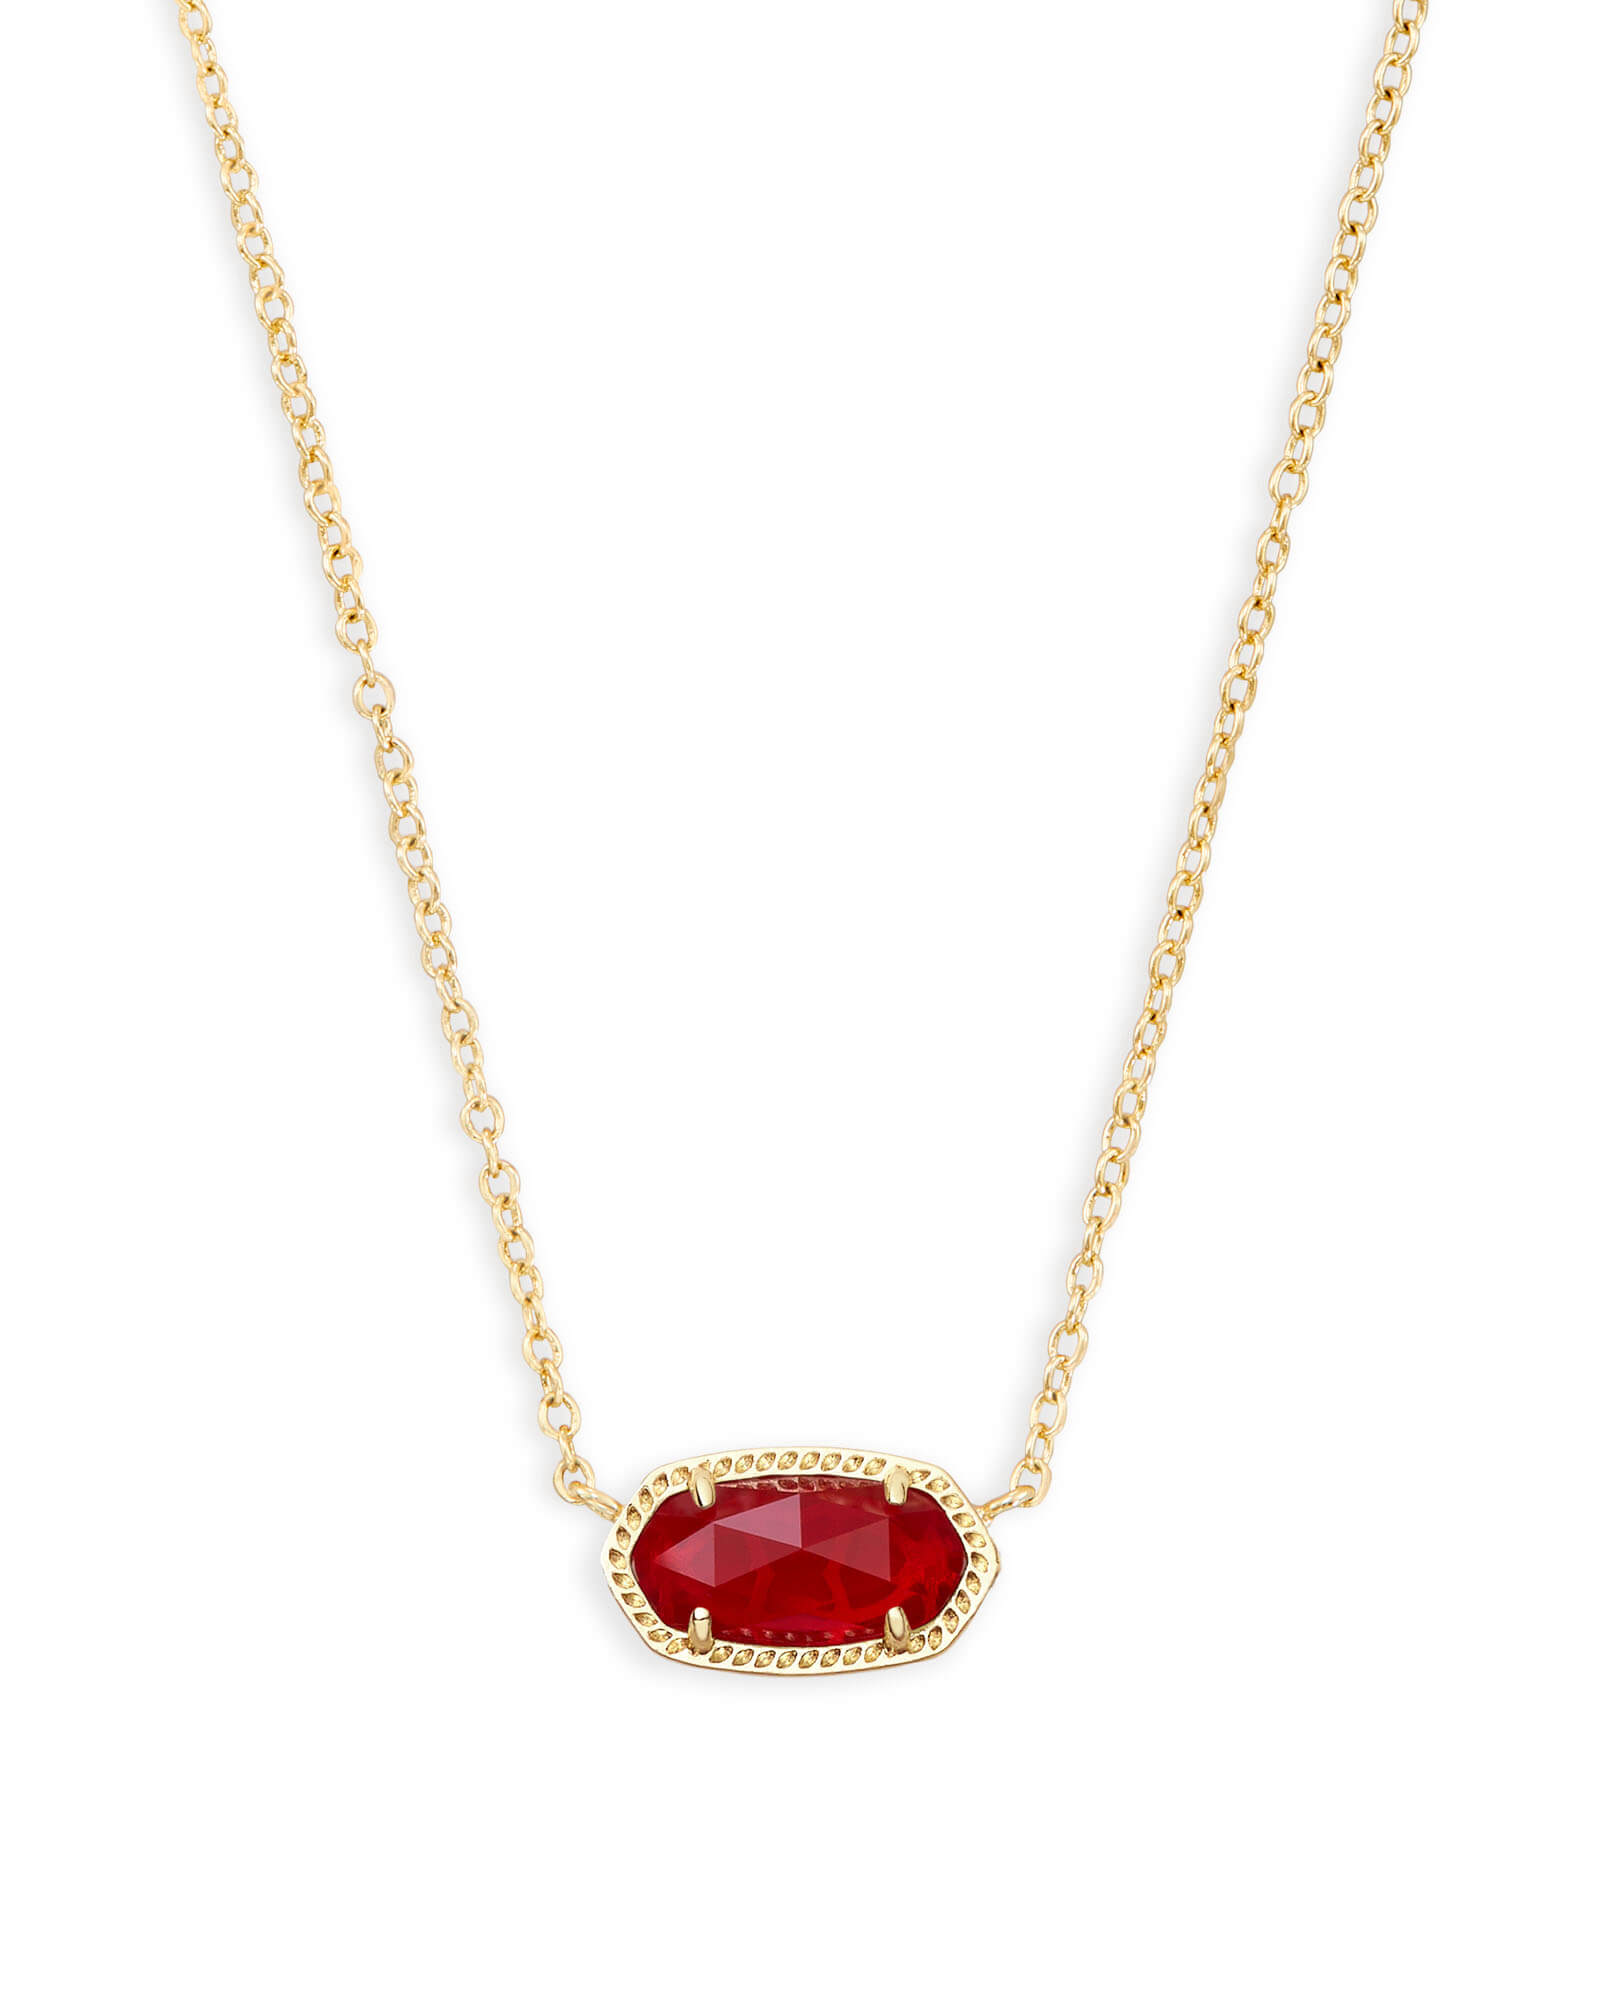 6af9c9d364fa0 Elisa Gold Pendant Necklace in Ruby Red | Kendra Scott